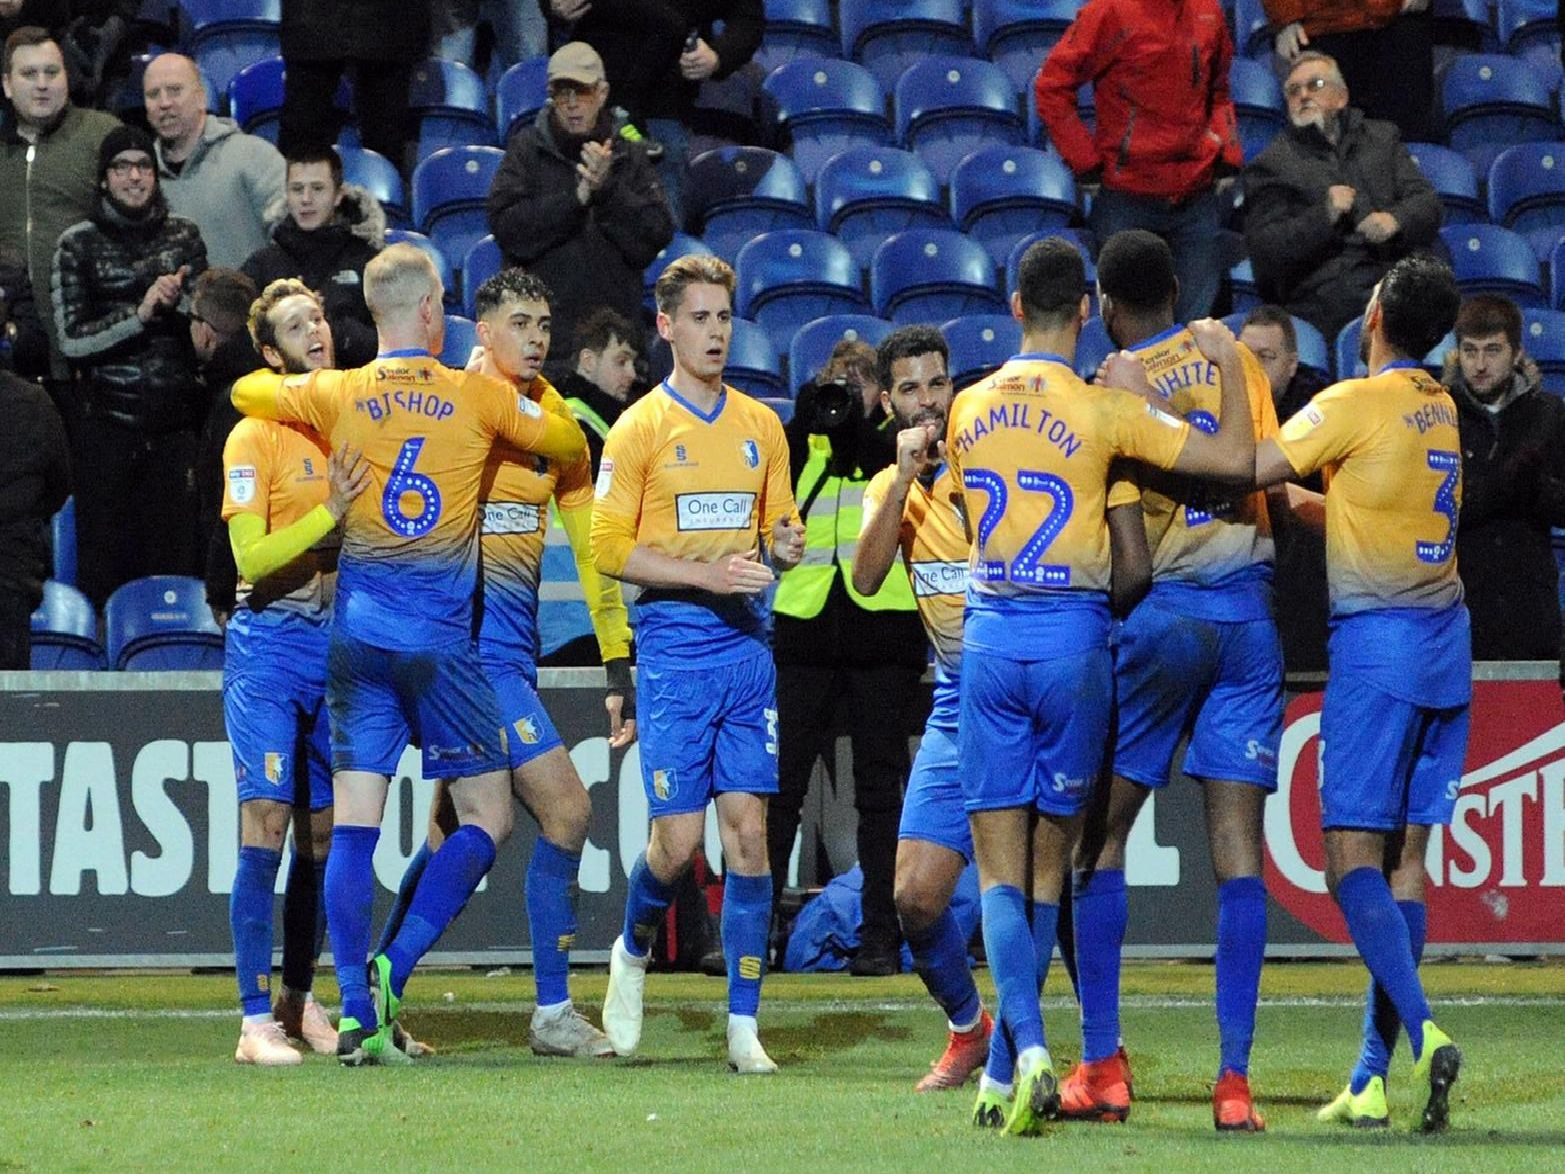 Stags players celebrate.